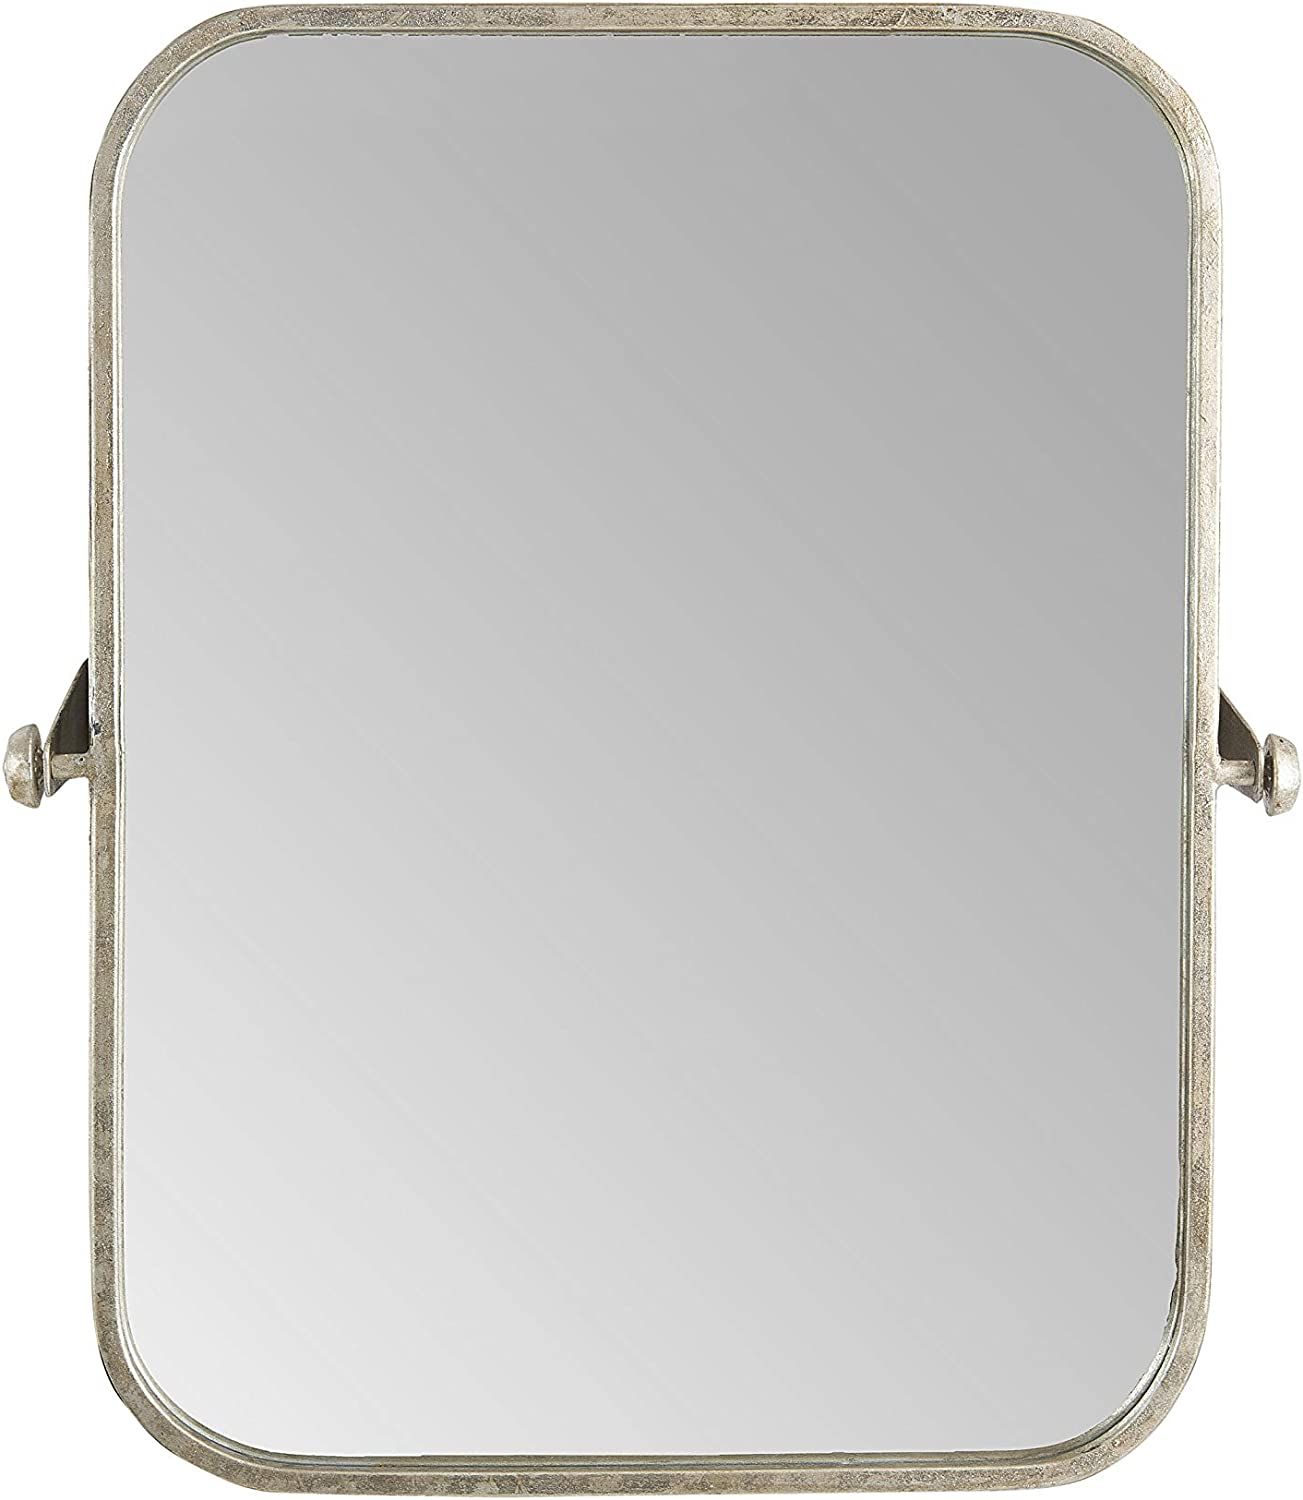 Creative Co-op Metal Framed Pivoting Wall Reflective Mirrors, Gold